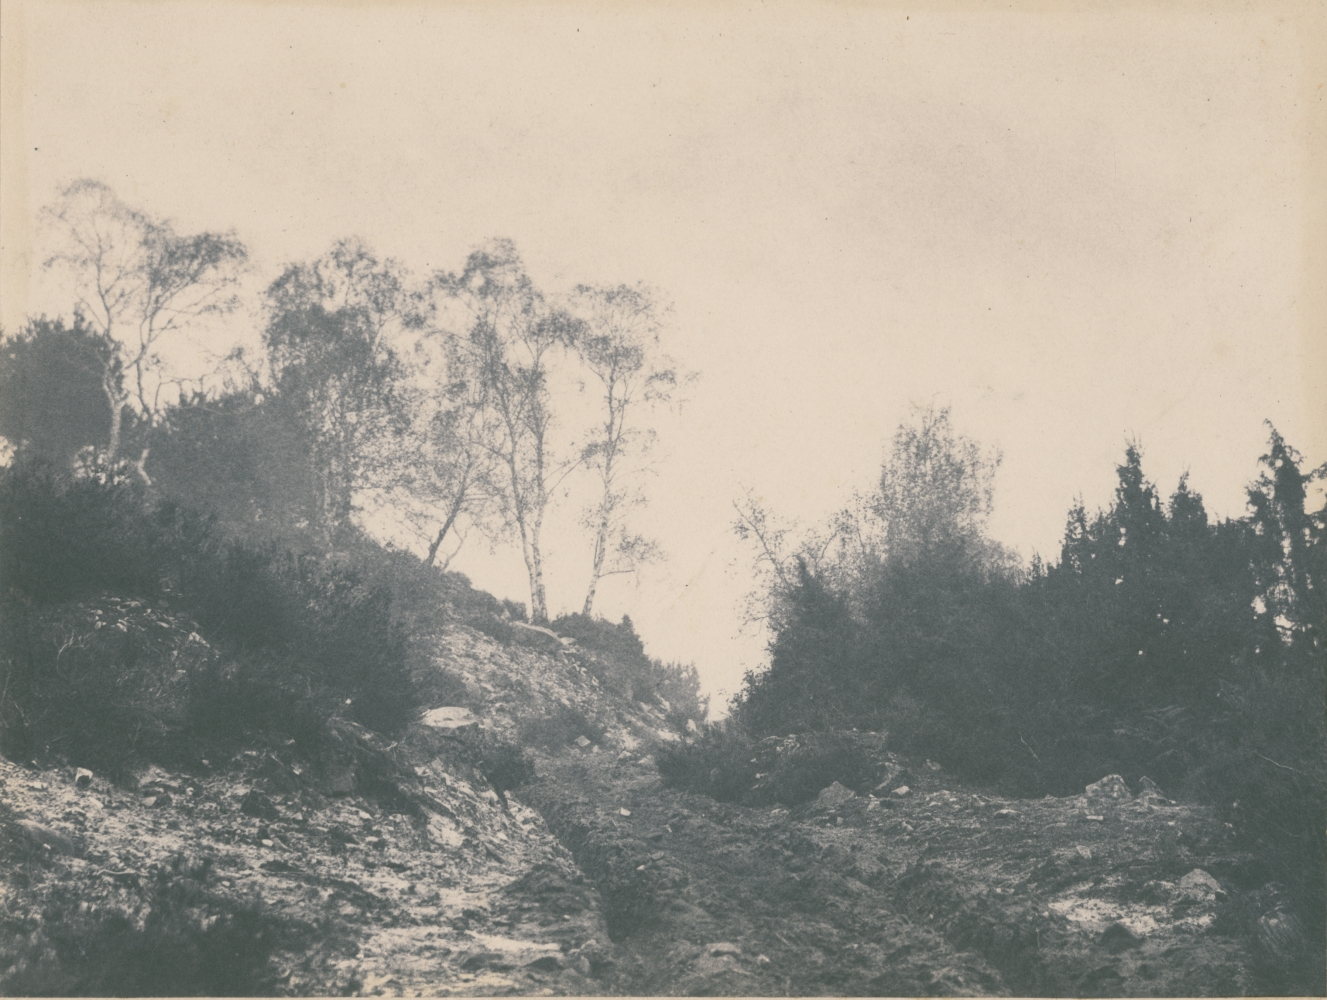 """Eugène CUVELIER (French, 1837-1900) Pathway in the Forest of Fontainebleau*, October 1862 Salt print from a paper negative 19.8 x 25.8 cm, ruled in pencil, mounted on 39.5 x 52.2 cm paper Numbered """"N. 168"""" and dated """"8br 62"""" in pencil on mount"""